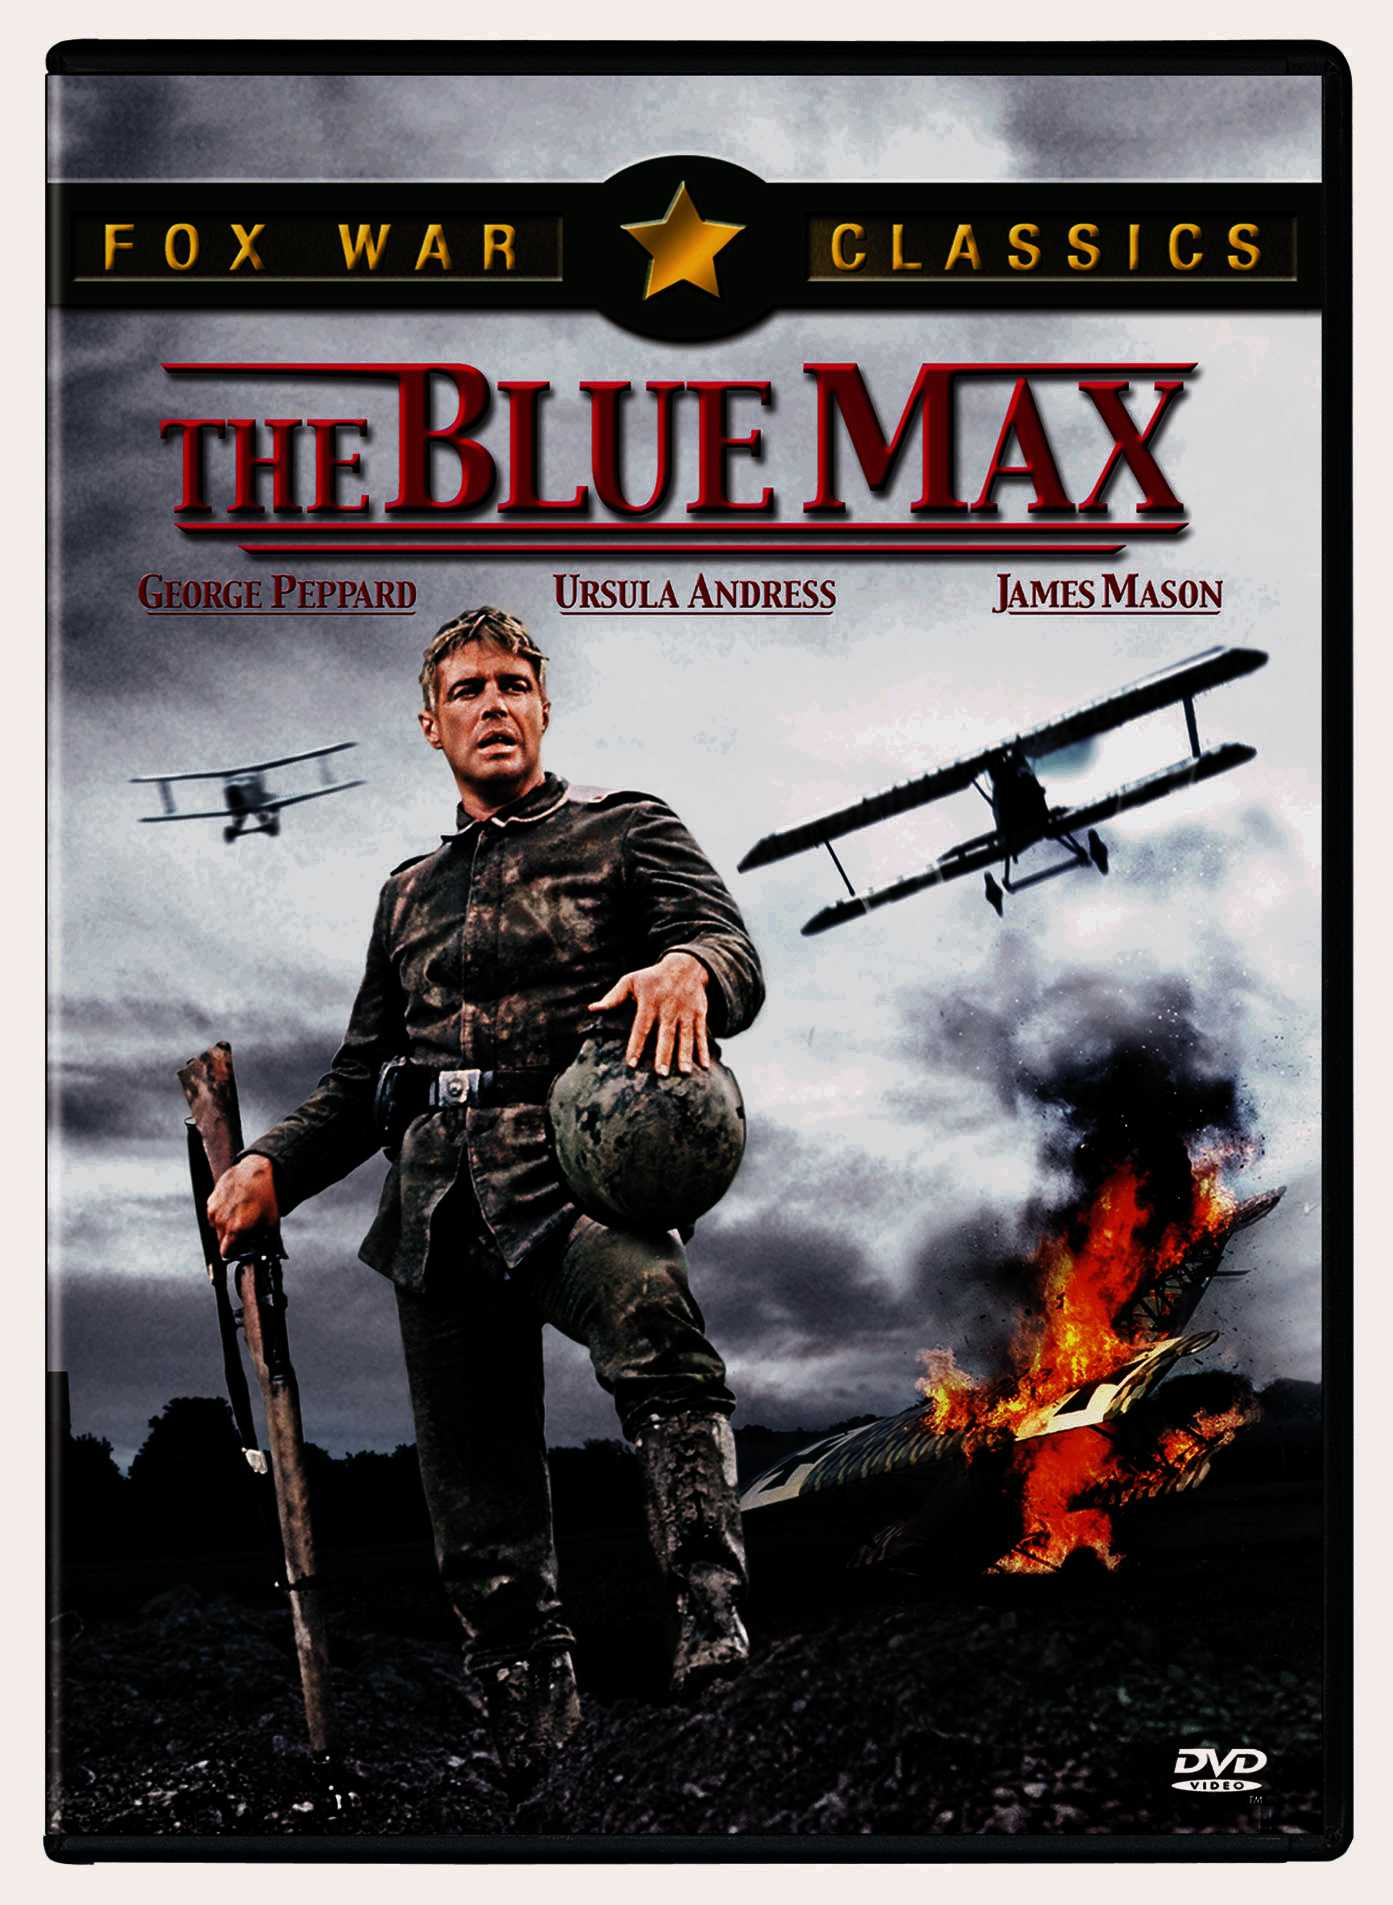 BLUE MAX BY PEPPARD,GEORGE (DVD)